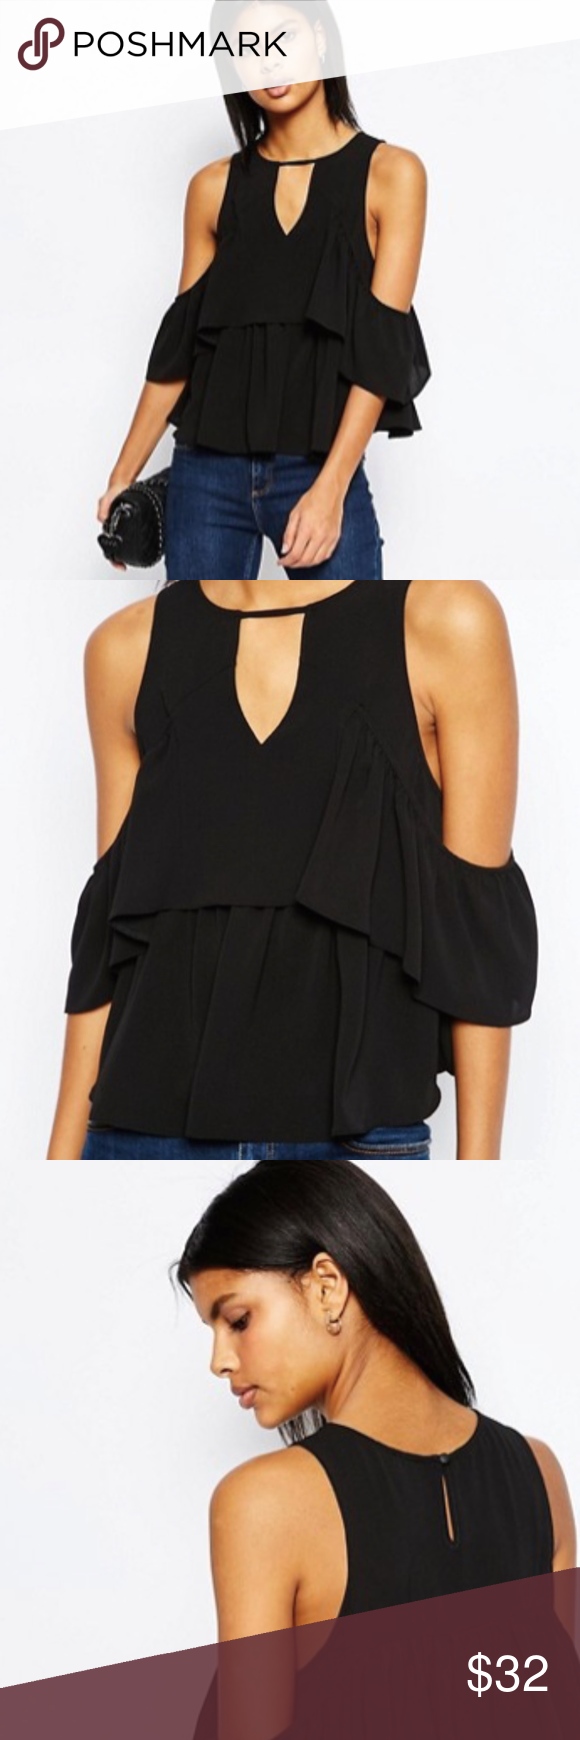 e42d8726f1ece NWT ASOS Tiered Black Cold Shoulder Top NWT is ASOS Black Tiered (two wide  ruffles around bottom half) Cold Shoulder top. Beautiful layering piece.